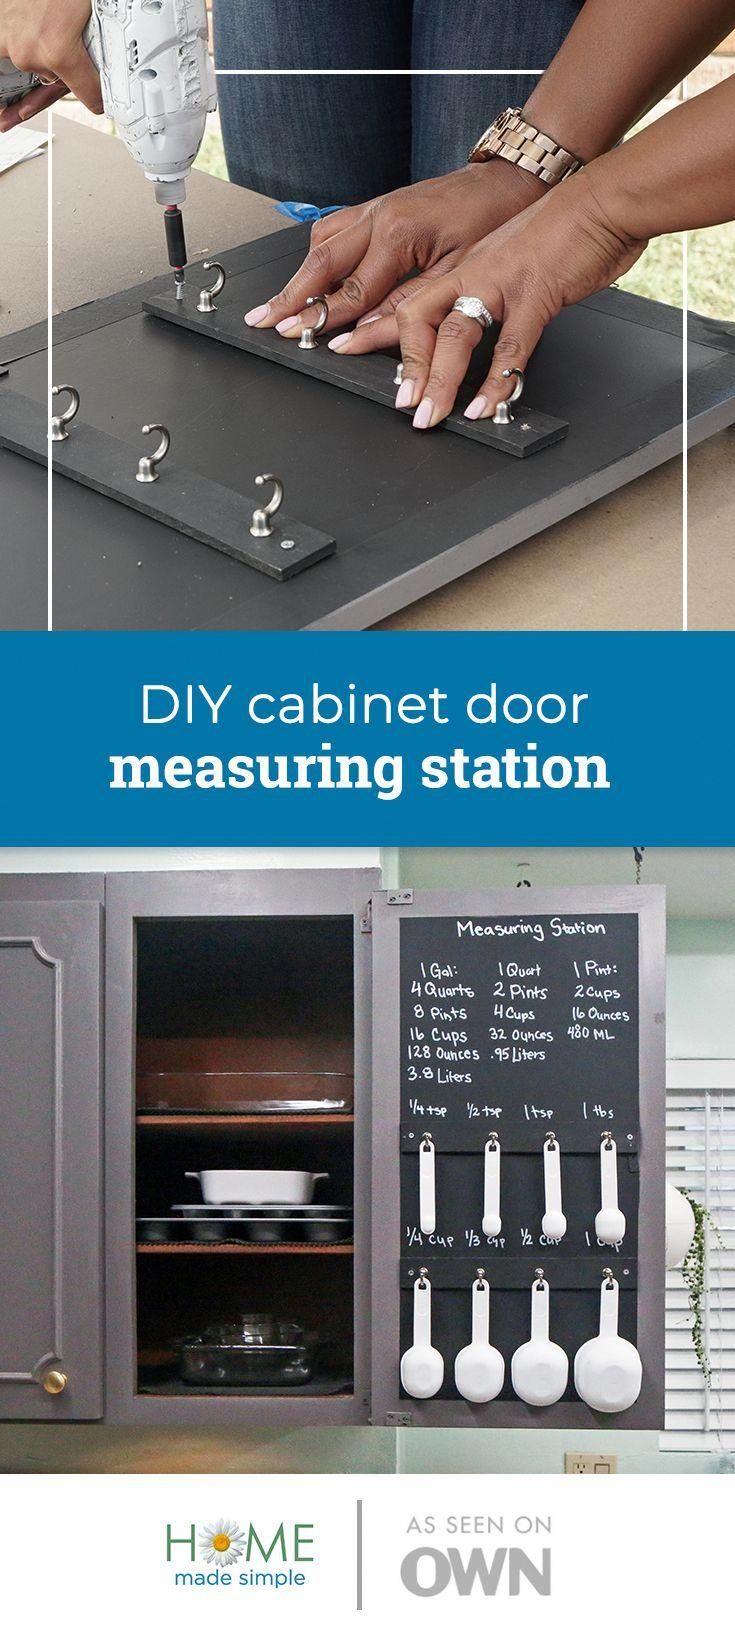 All It Takes Is Some Chalk Paint And Hooks To Add A Smart And Simple Measuring Station To Your Kitche Home Made Simple Diy Cabinet Doors Cheap Kitchen Cabinets